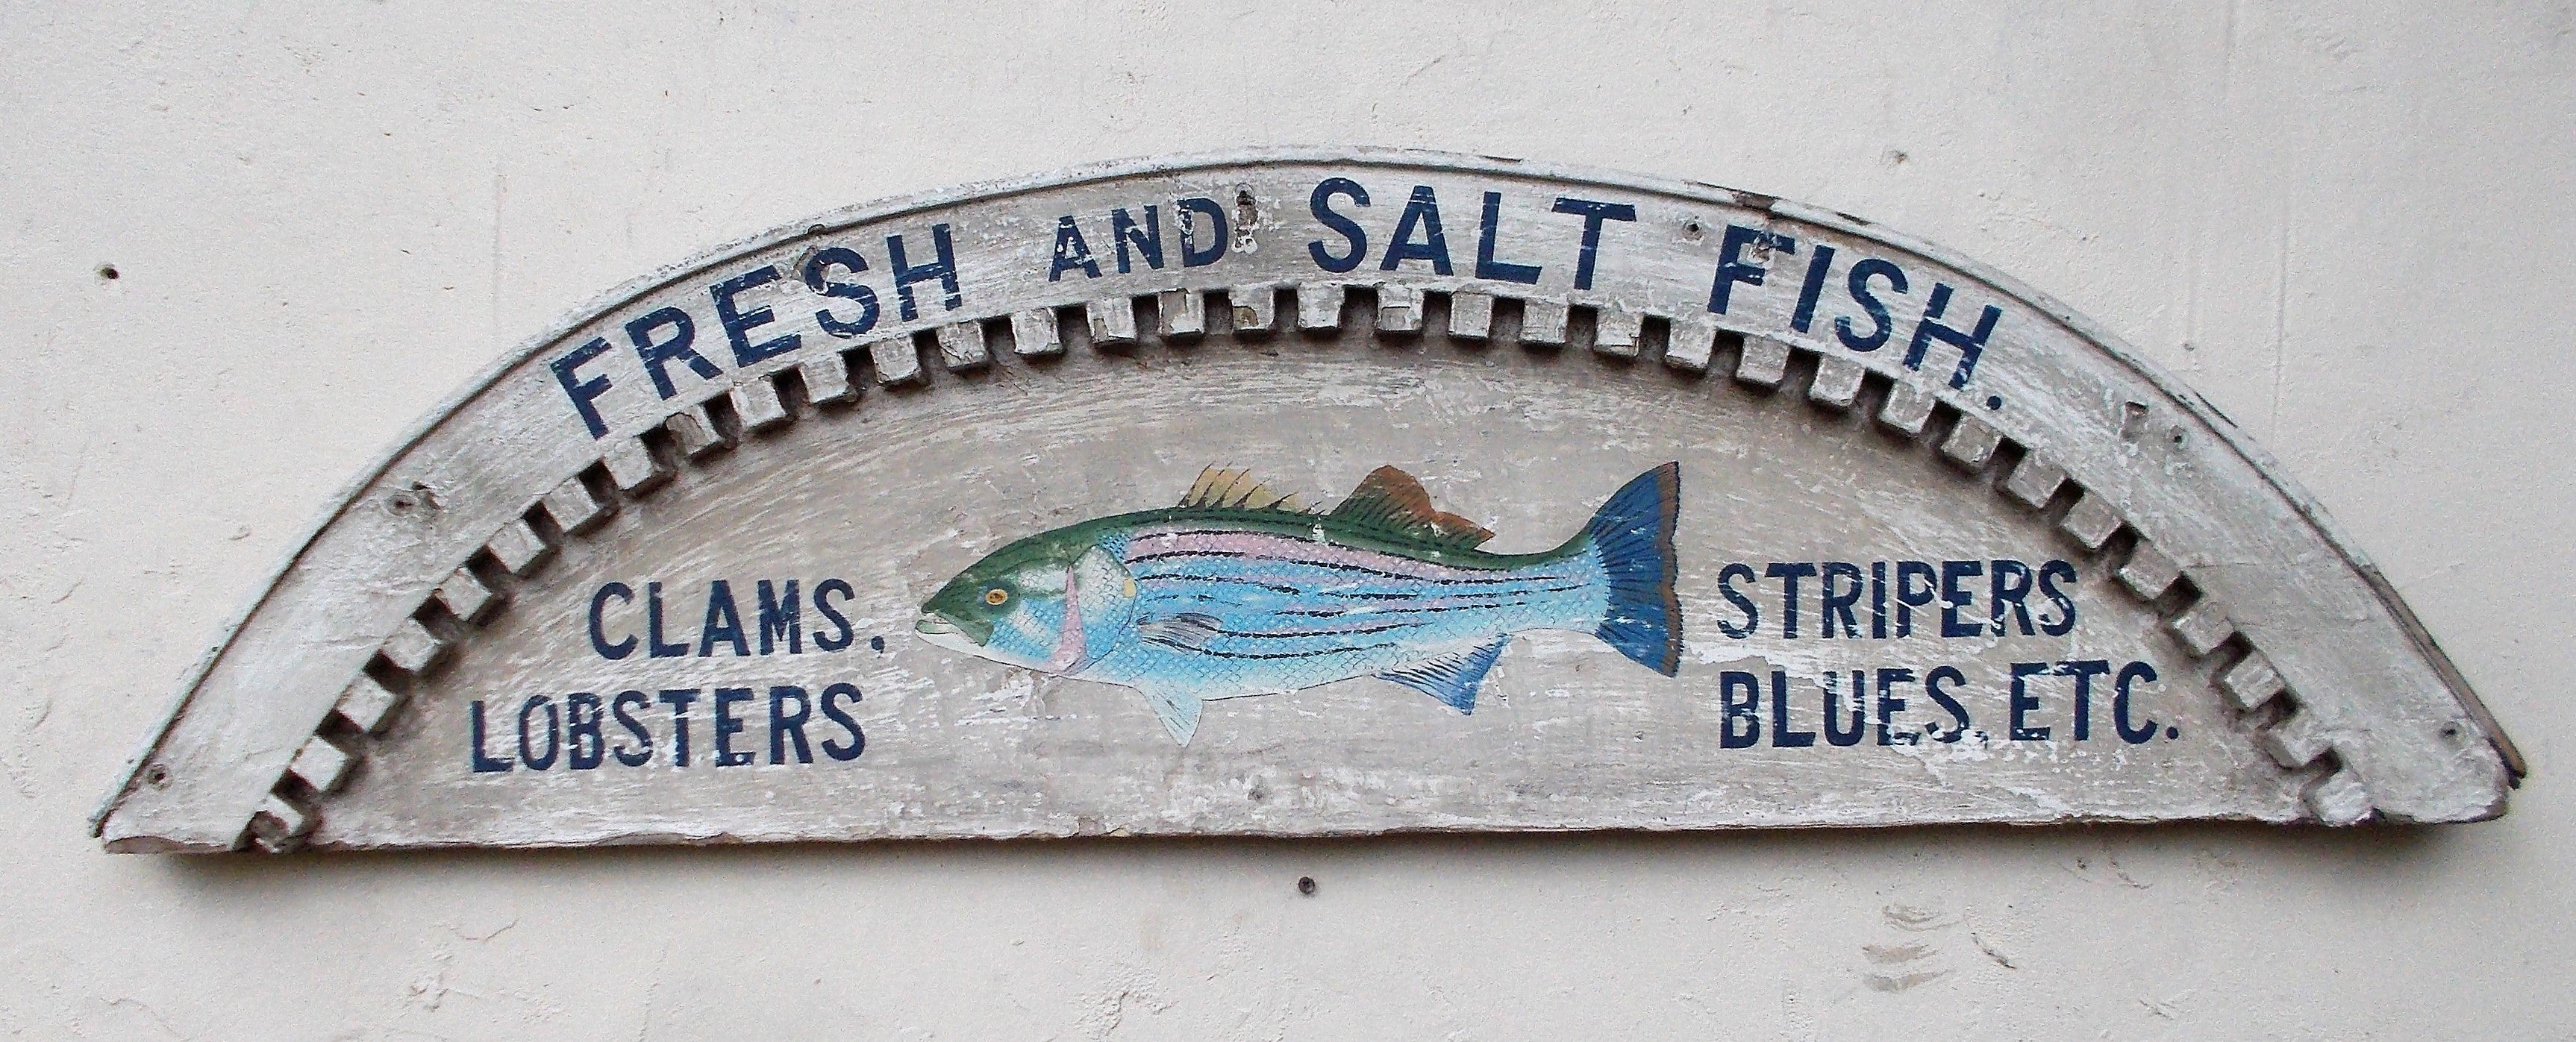 Fresh and Salt Fish